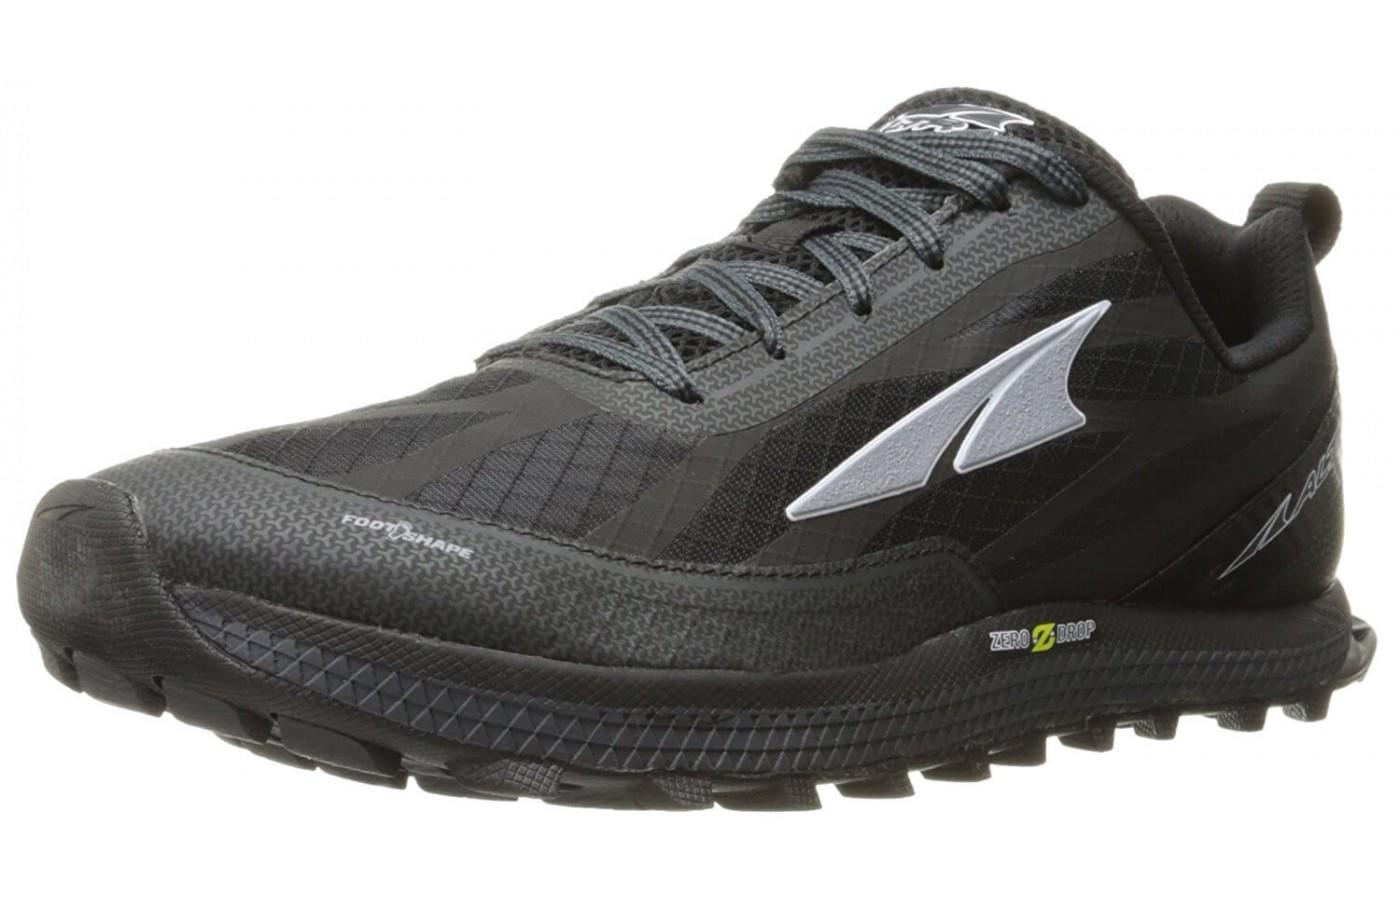 The Altra Supeior 3.0 is lightweight but aggressive on the trails.